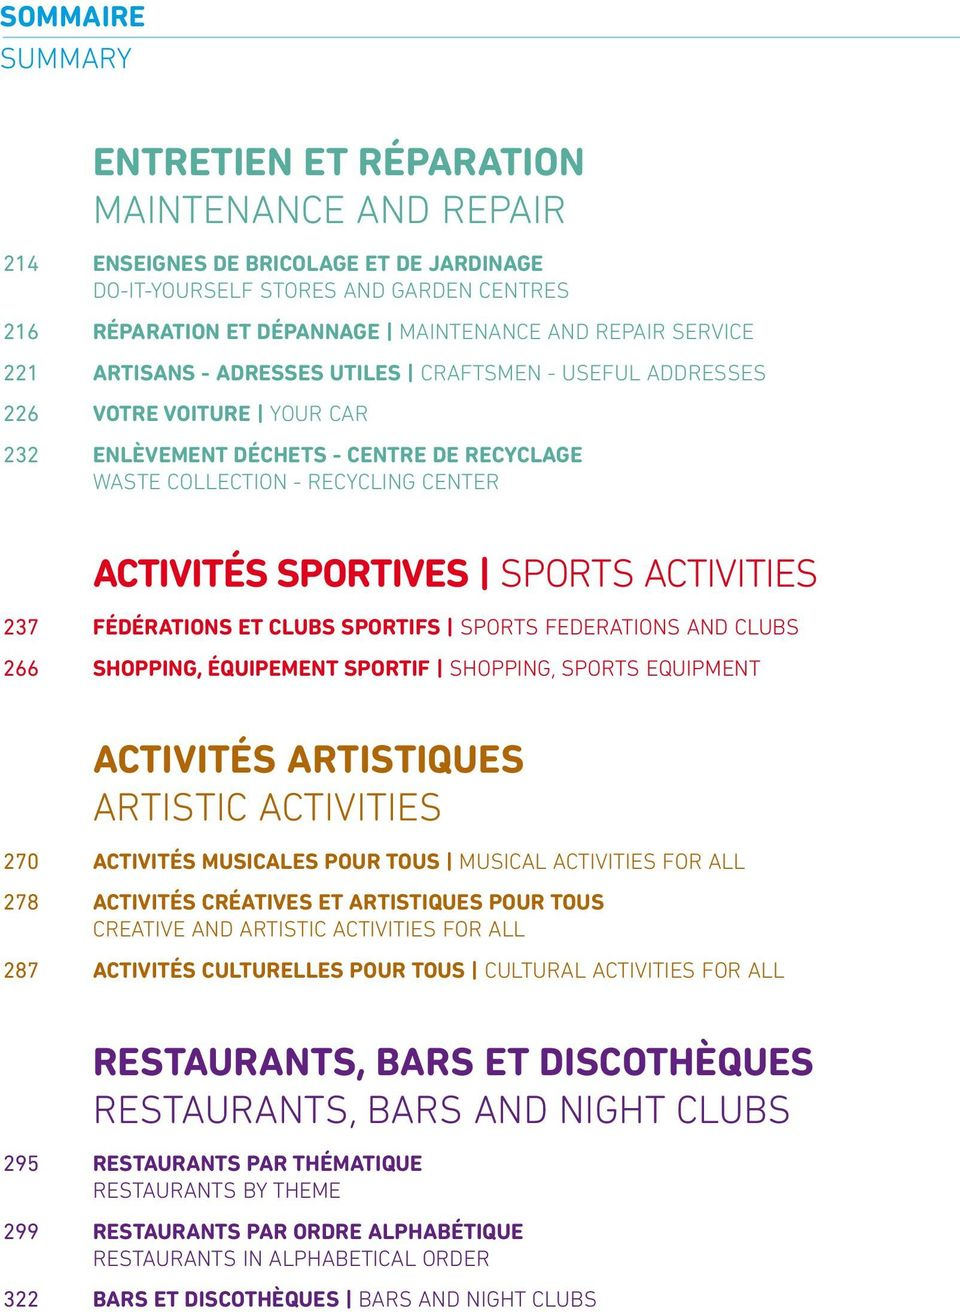 sports Activities 237 FéDéRATIONS ET CLUBS SPORTIFS SPORTS FEDERATIONS AND CLUBS 266 ShOPPING, équipement SPORTIF SHOPPINg, SPORTS EqUIPMENT Activités Artistiques Artistic Activities 270 ACTIVITéS